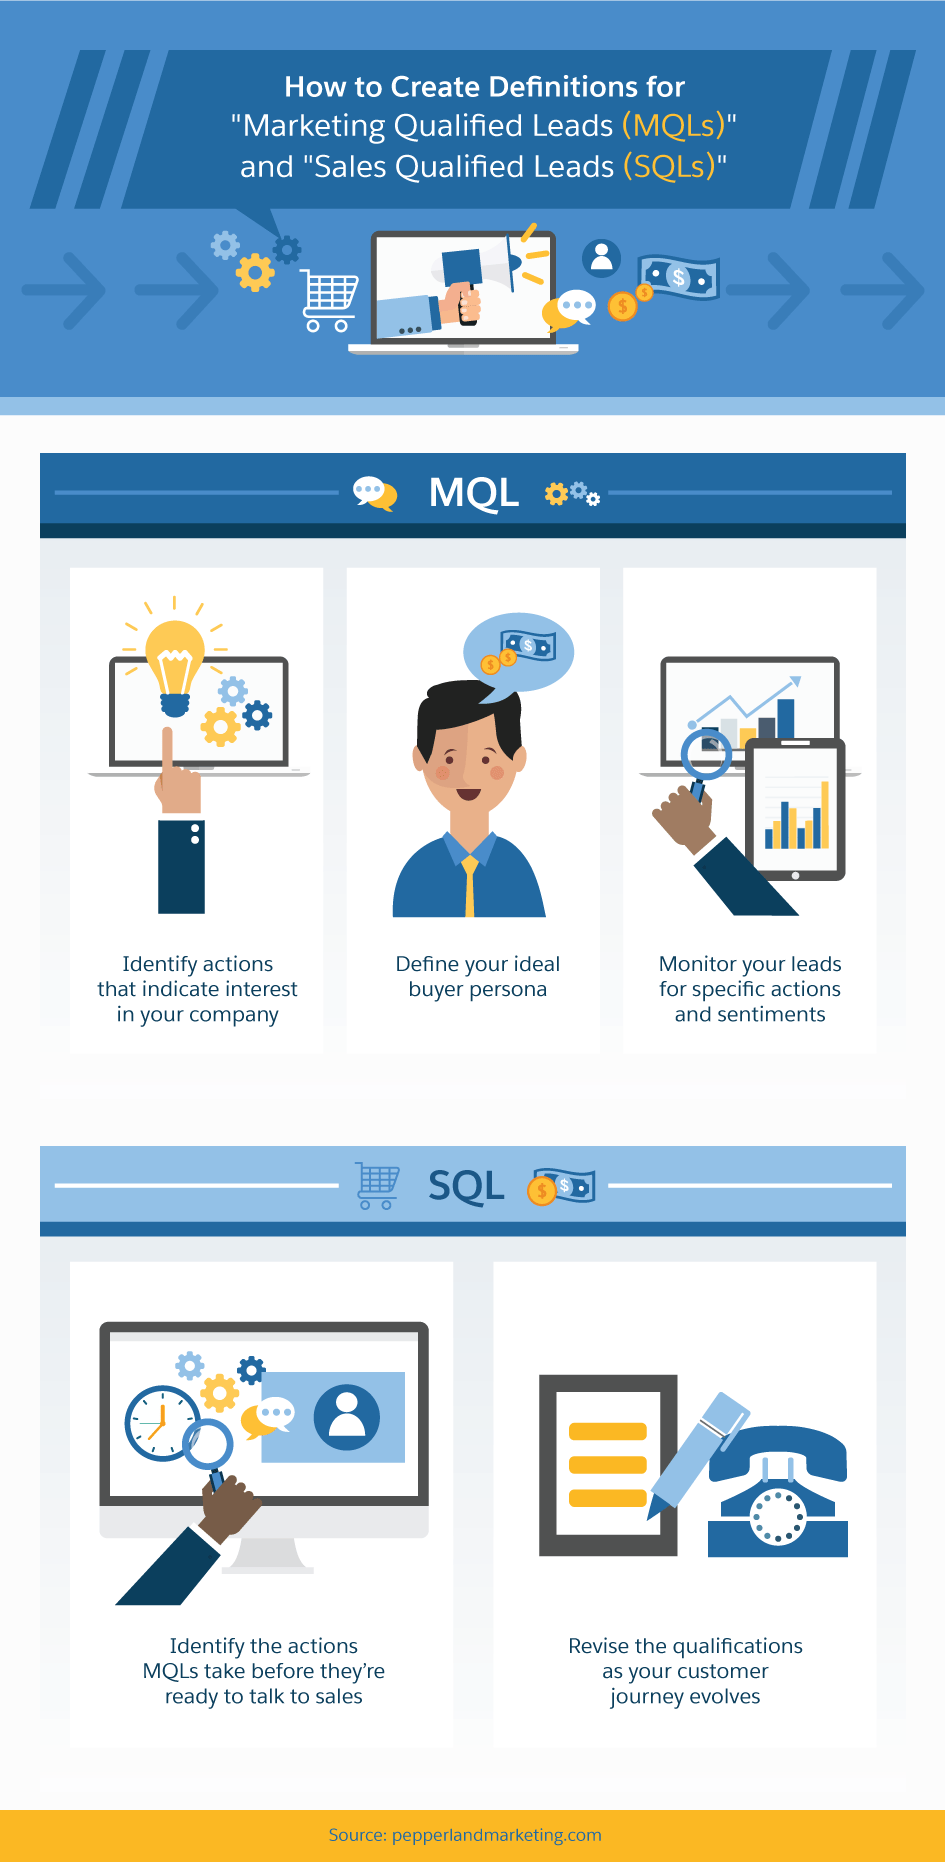 How to Create Definitions for MQLs and SQLs